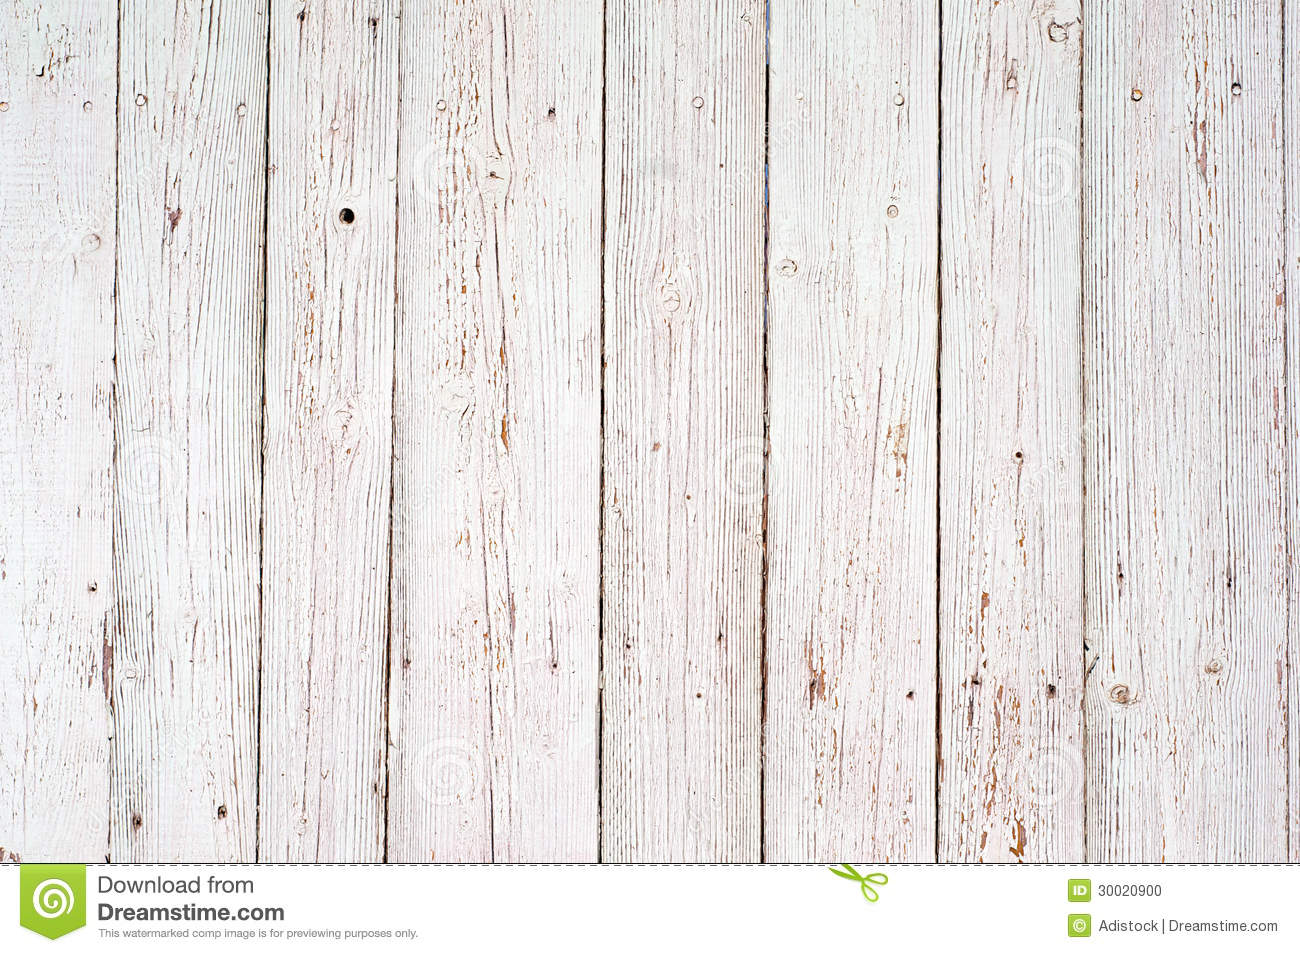 White wood texture background. old wood planks painted with white ...